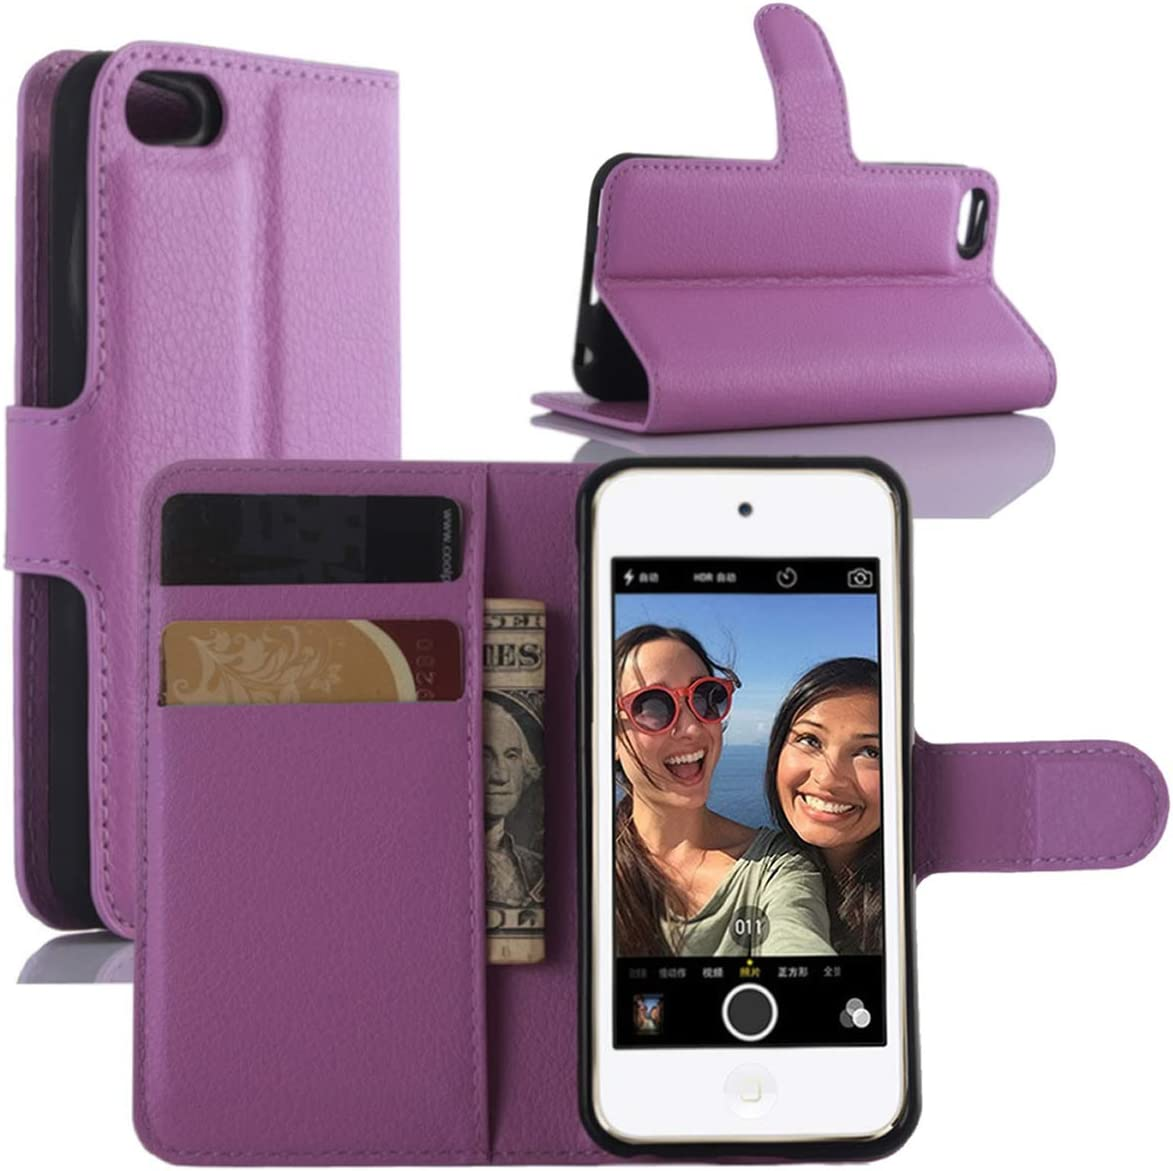 HualuBro iPod Touch 7 Case, Premium PU Leather Wallet Flip Folio Shockproof Phone Case Cover with [Kickstand] [Card Slots] [Magnetic Closure] for Apple iPod Touch 7th Generation 2019 (Purple)